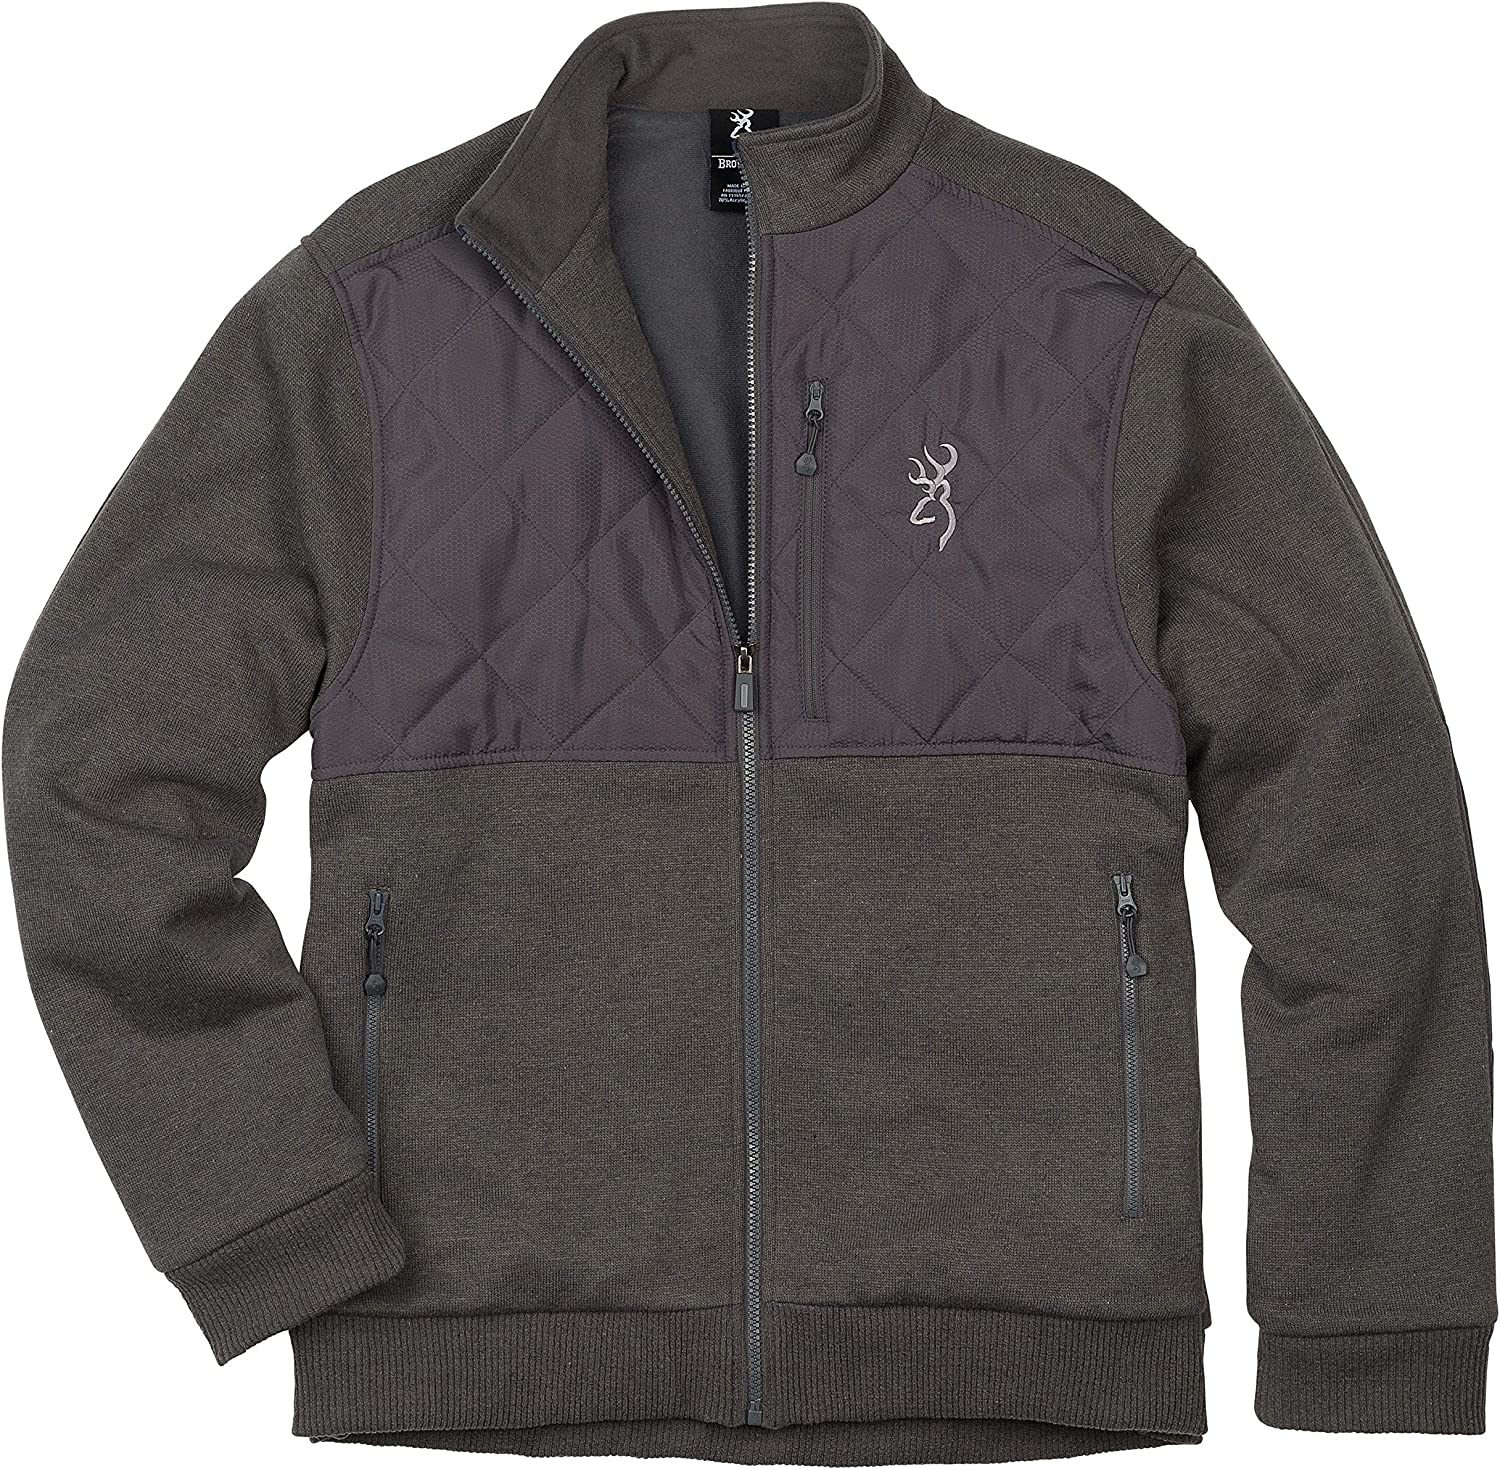 Browning Sweater